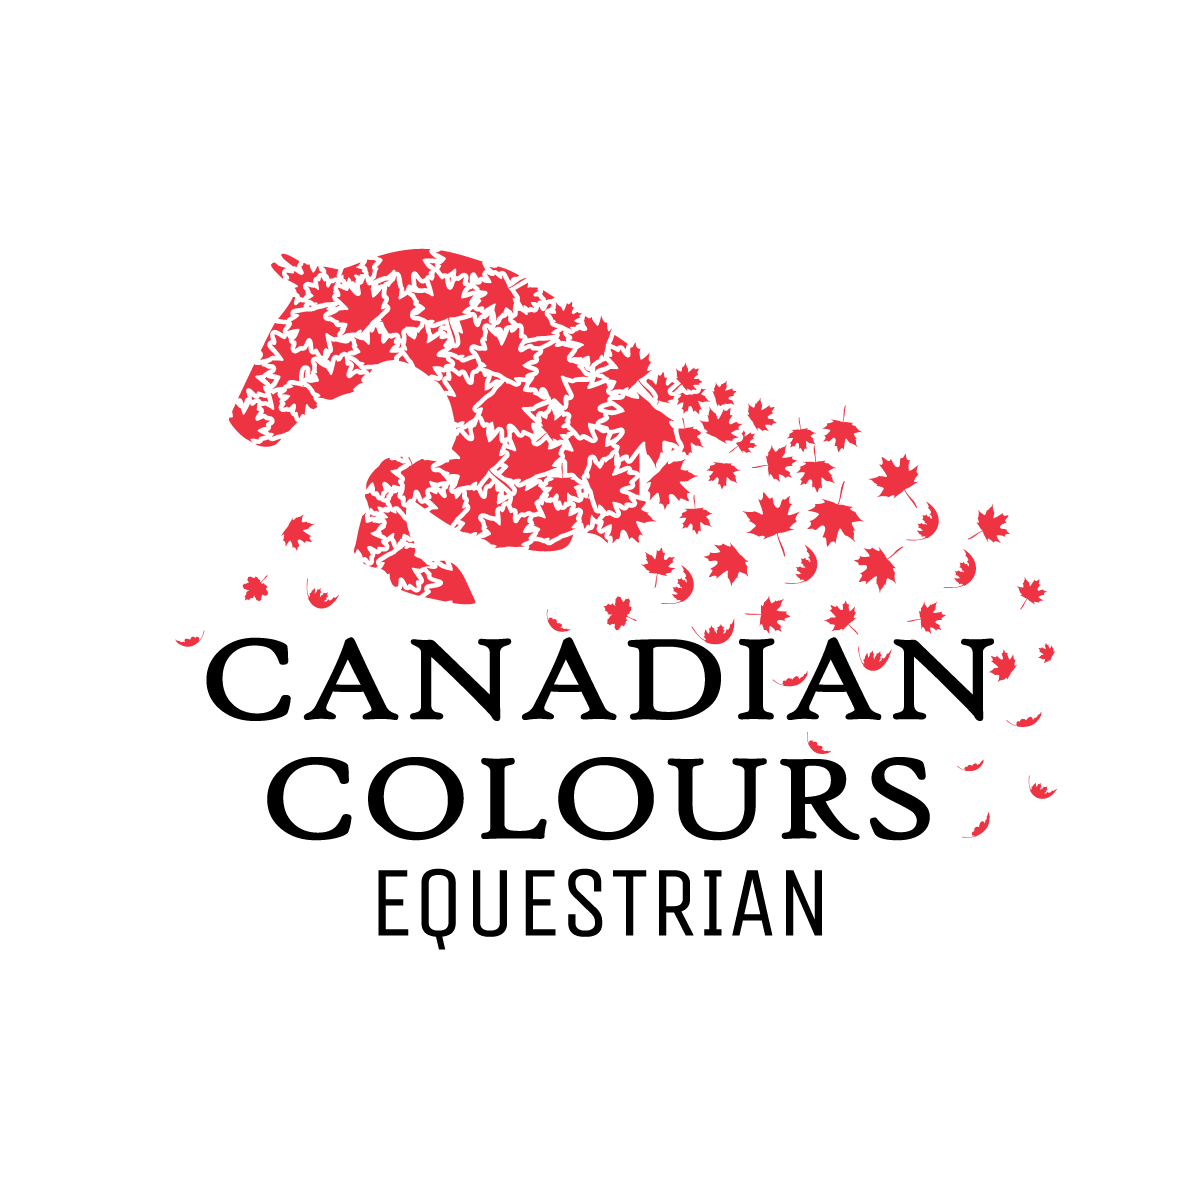 Canadian Colours Equestrian